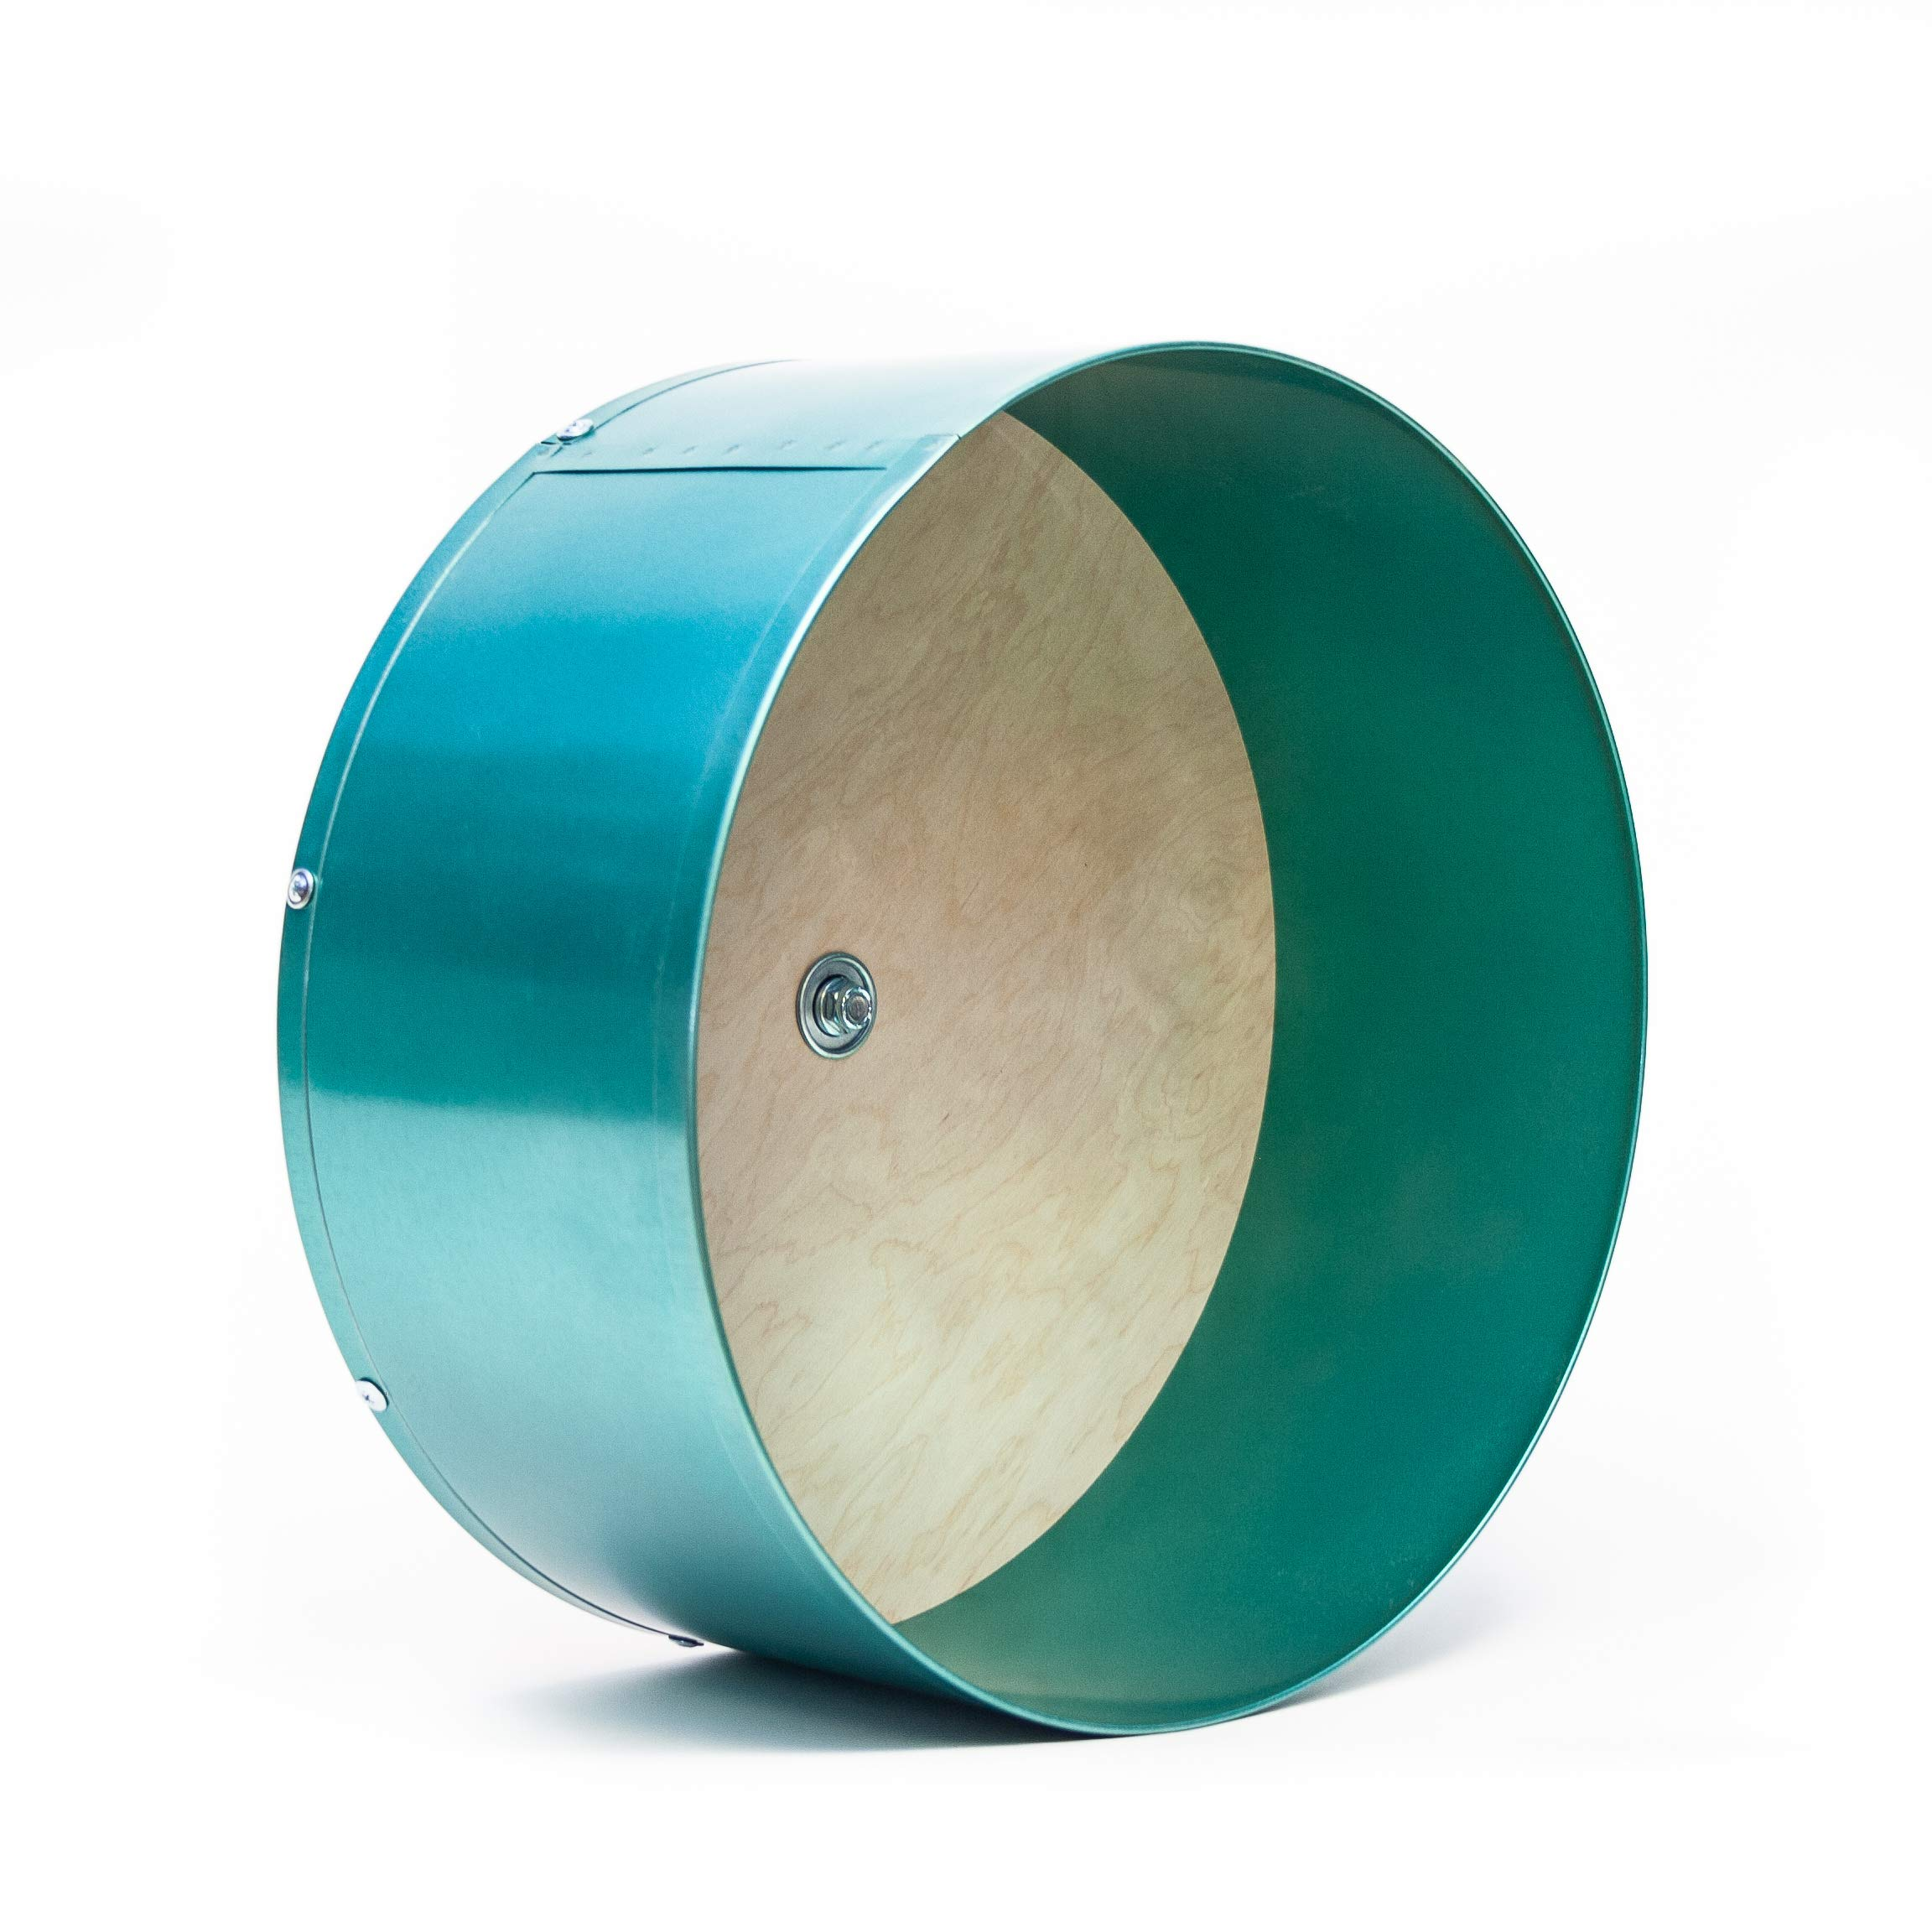 Quality Cage Crafters Colored 15'' Chin Spin Chinchilla Wheel - Handmade in USA - Quiet (Teal) by Quality Cage Crafters